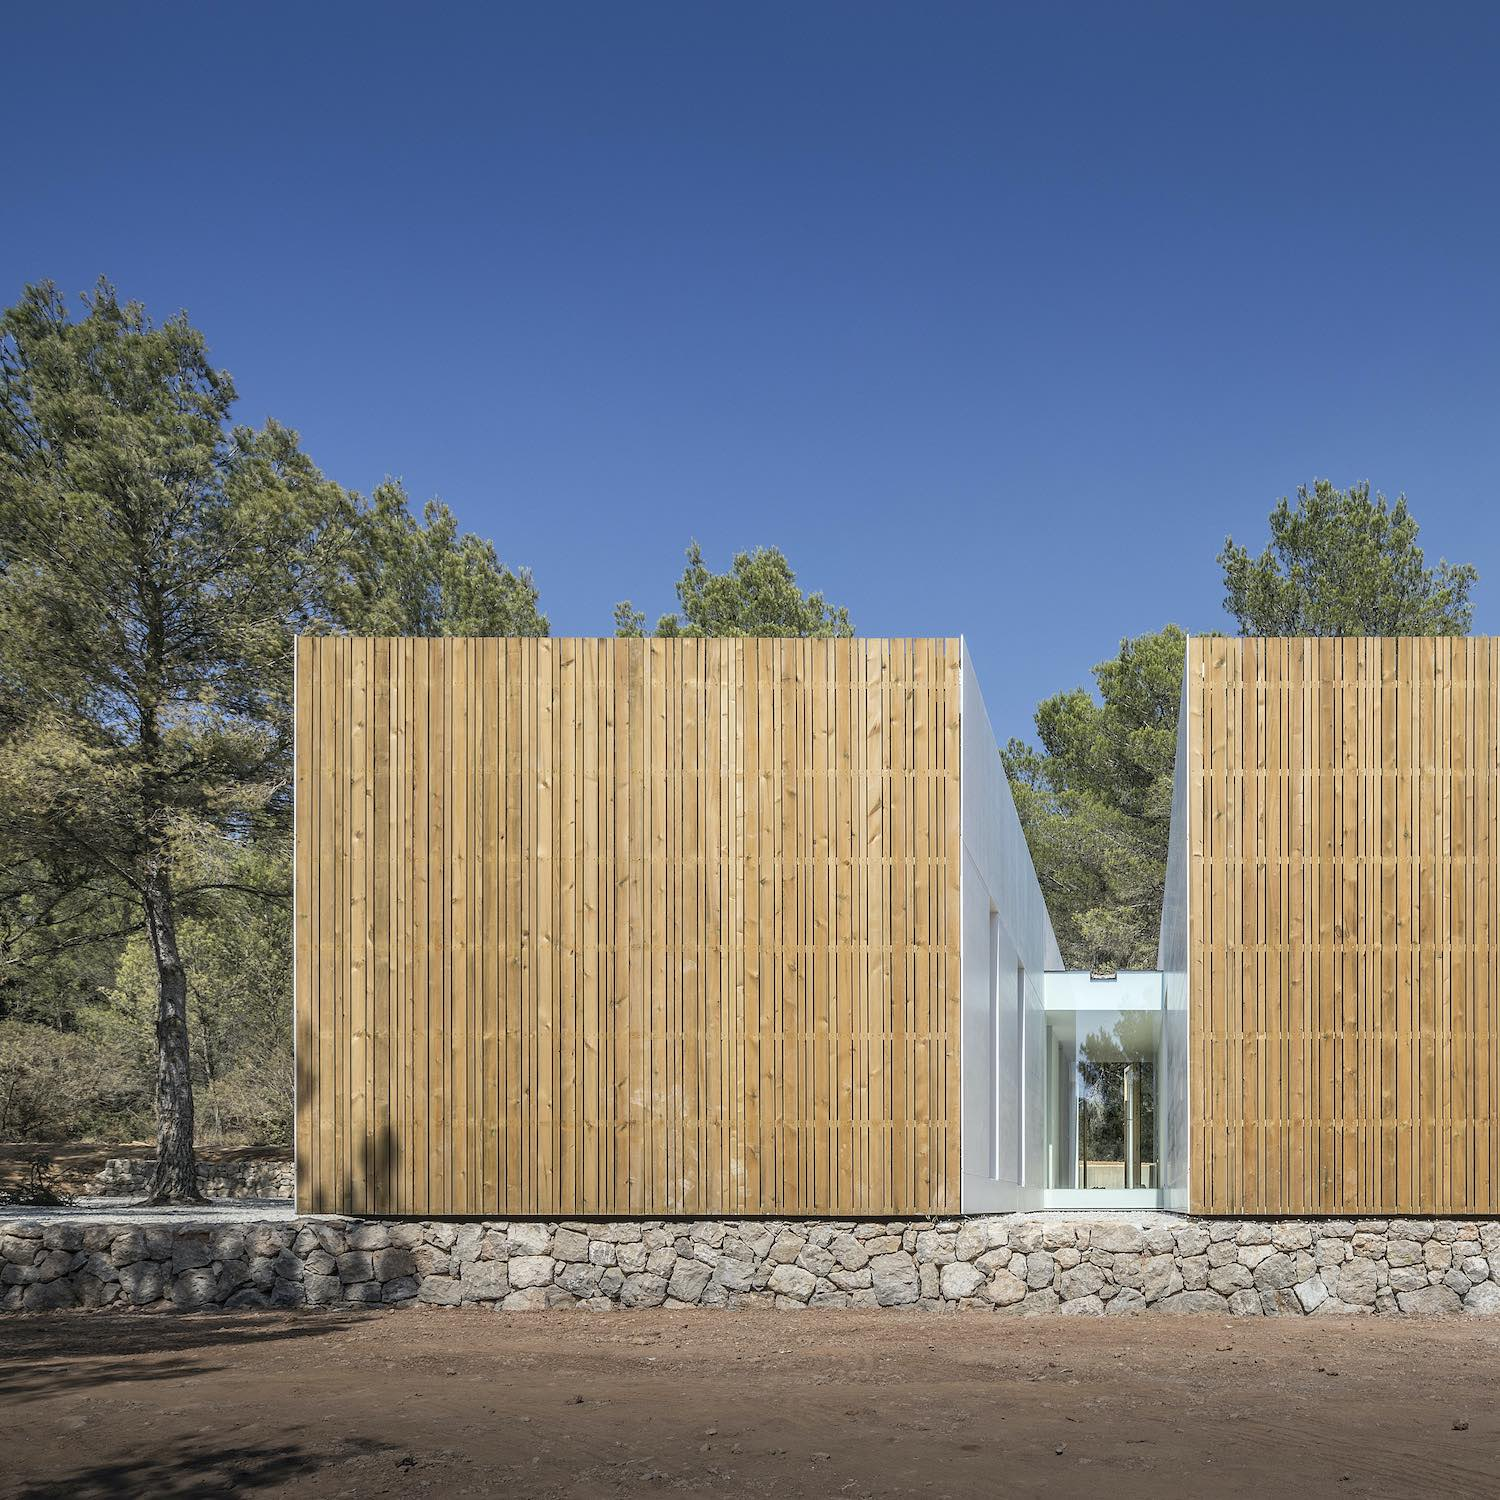 the exterior facade made with wooden material